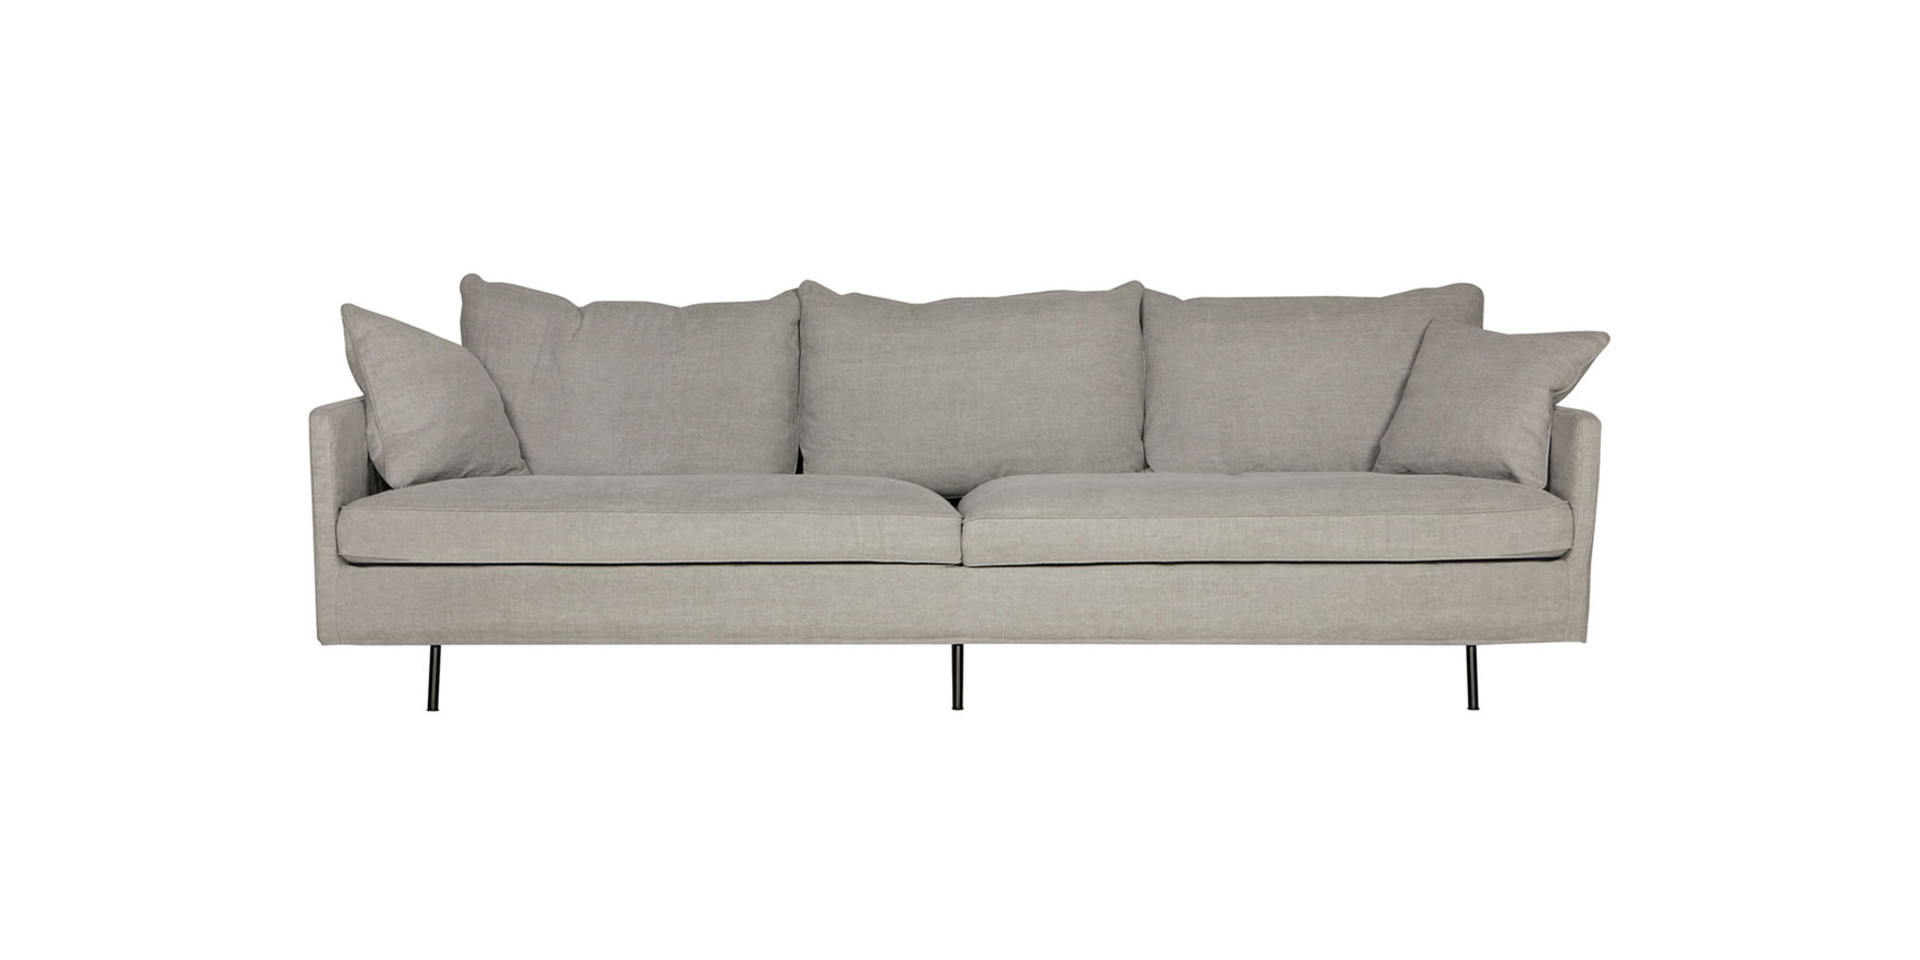 sits-julia-canape-4seater_kiss4_light_grey_1